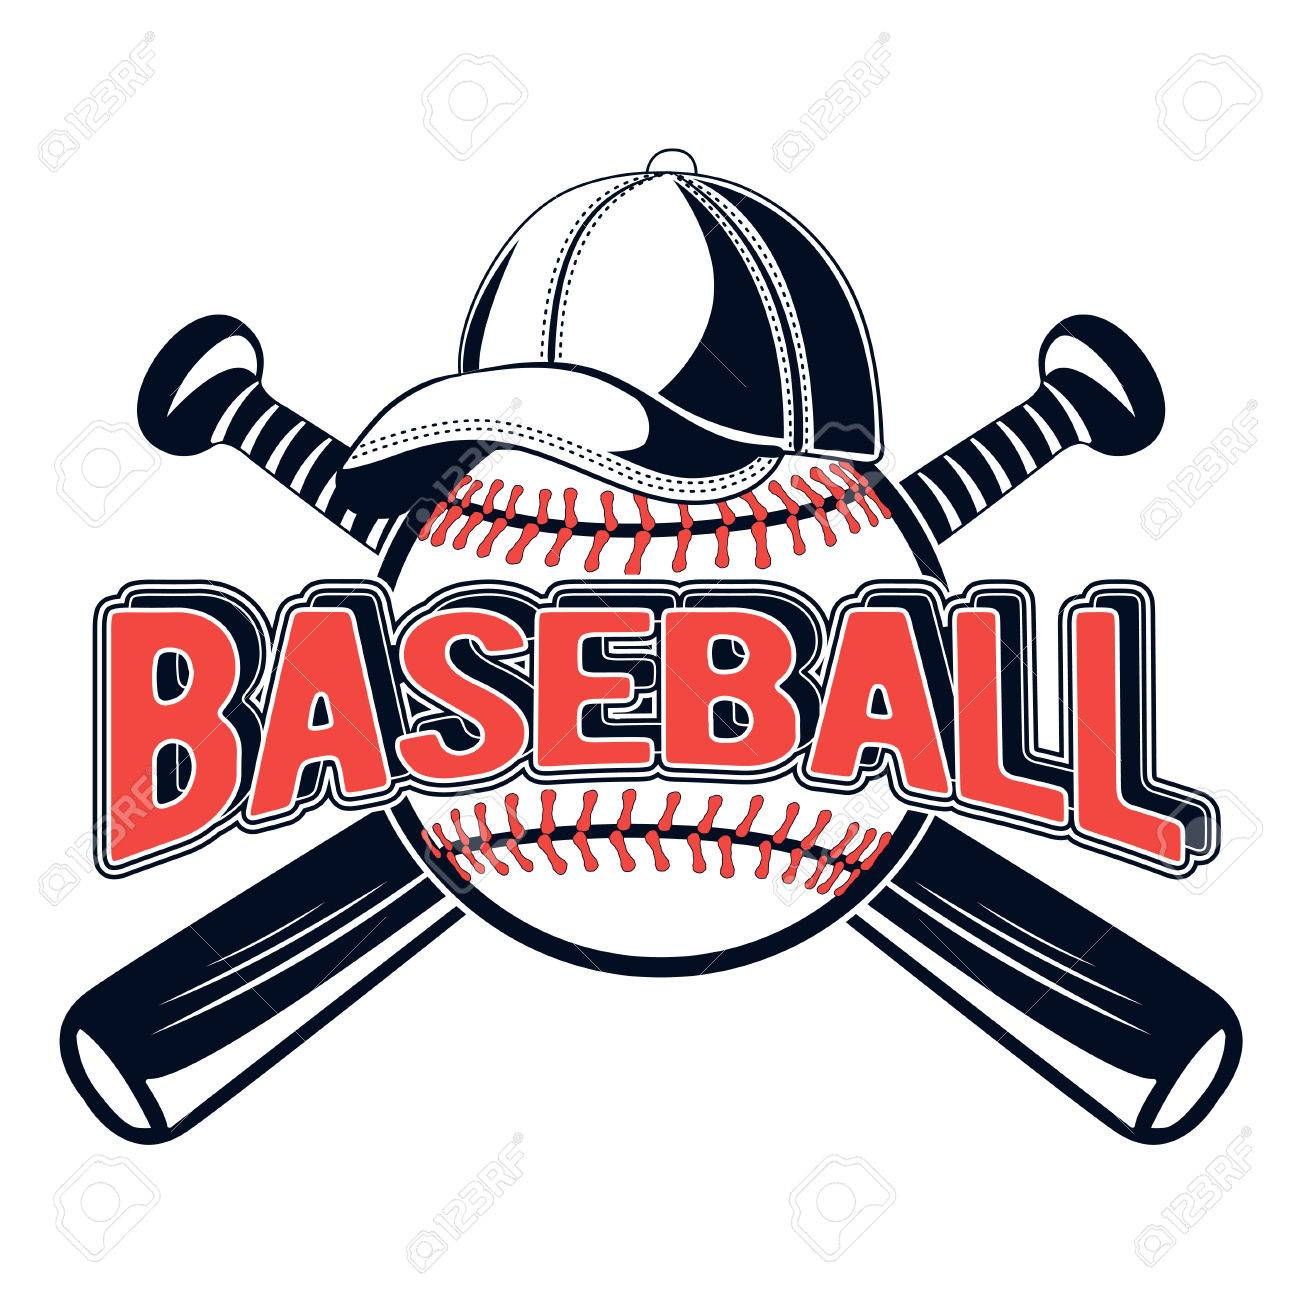 vector illustration of a baseball logo for your design print rh 123rf com baseball logo designs baseball logo design software